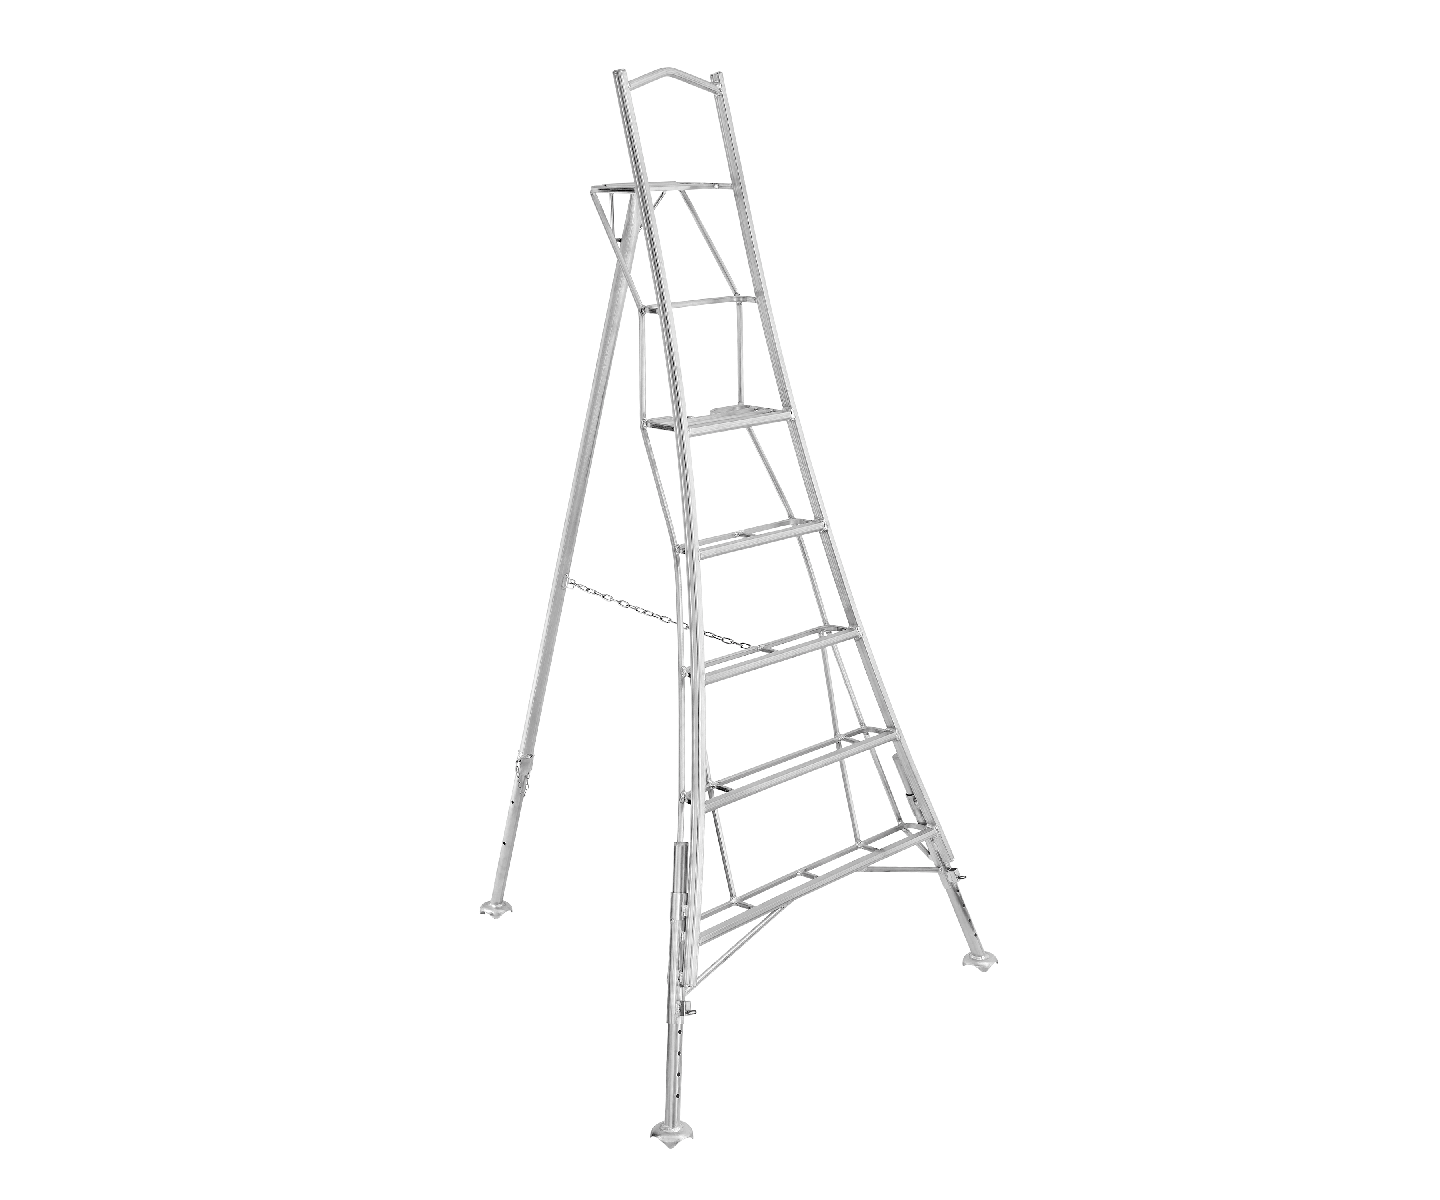 Henchman AIO 3 Leg Adjusting Tripod Ladder 12FT/3.6M